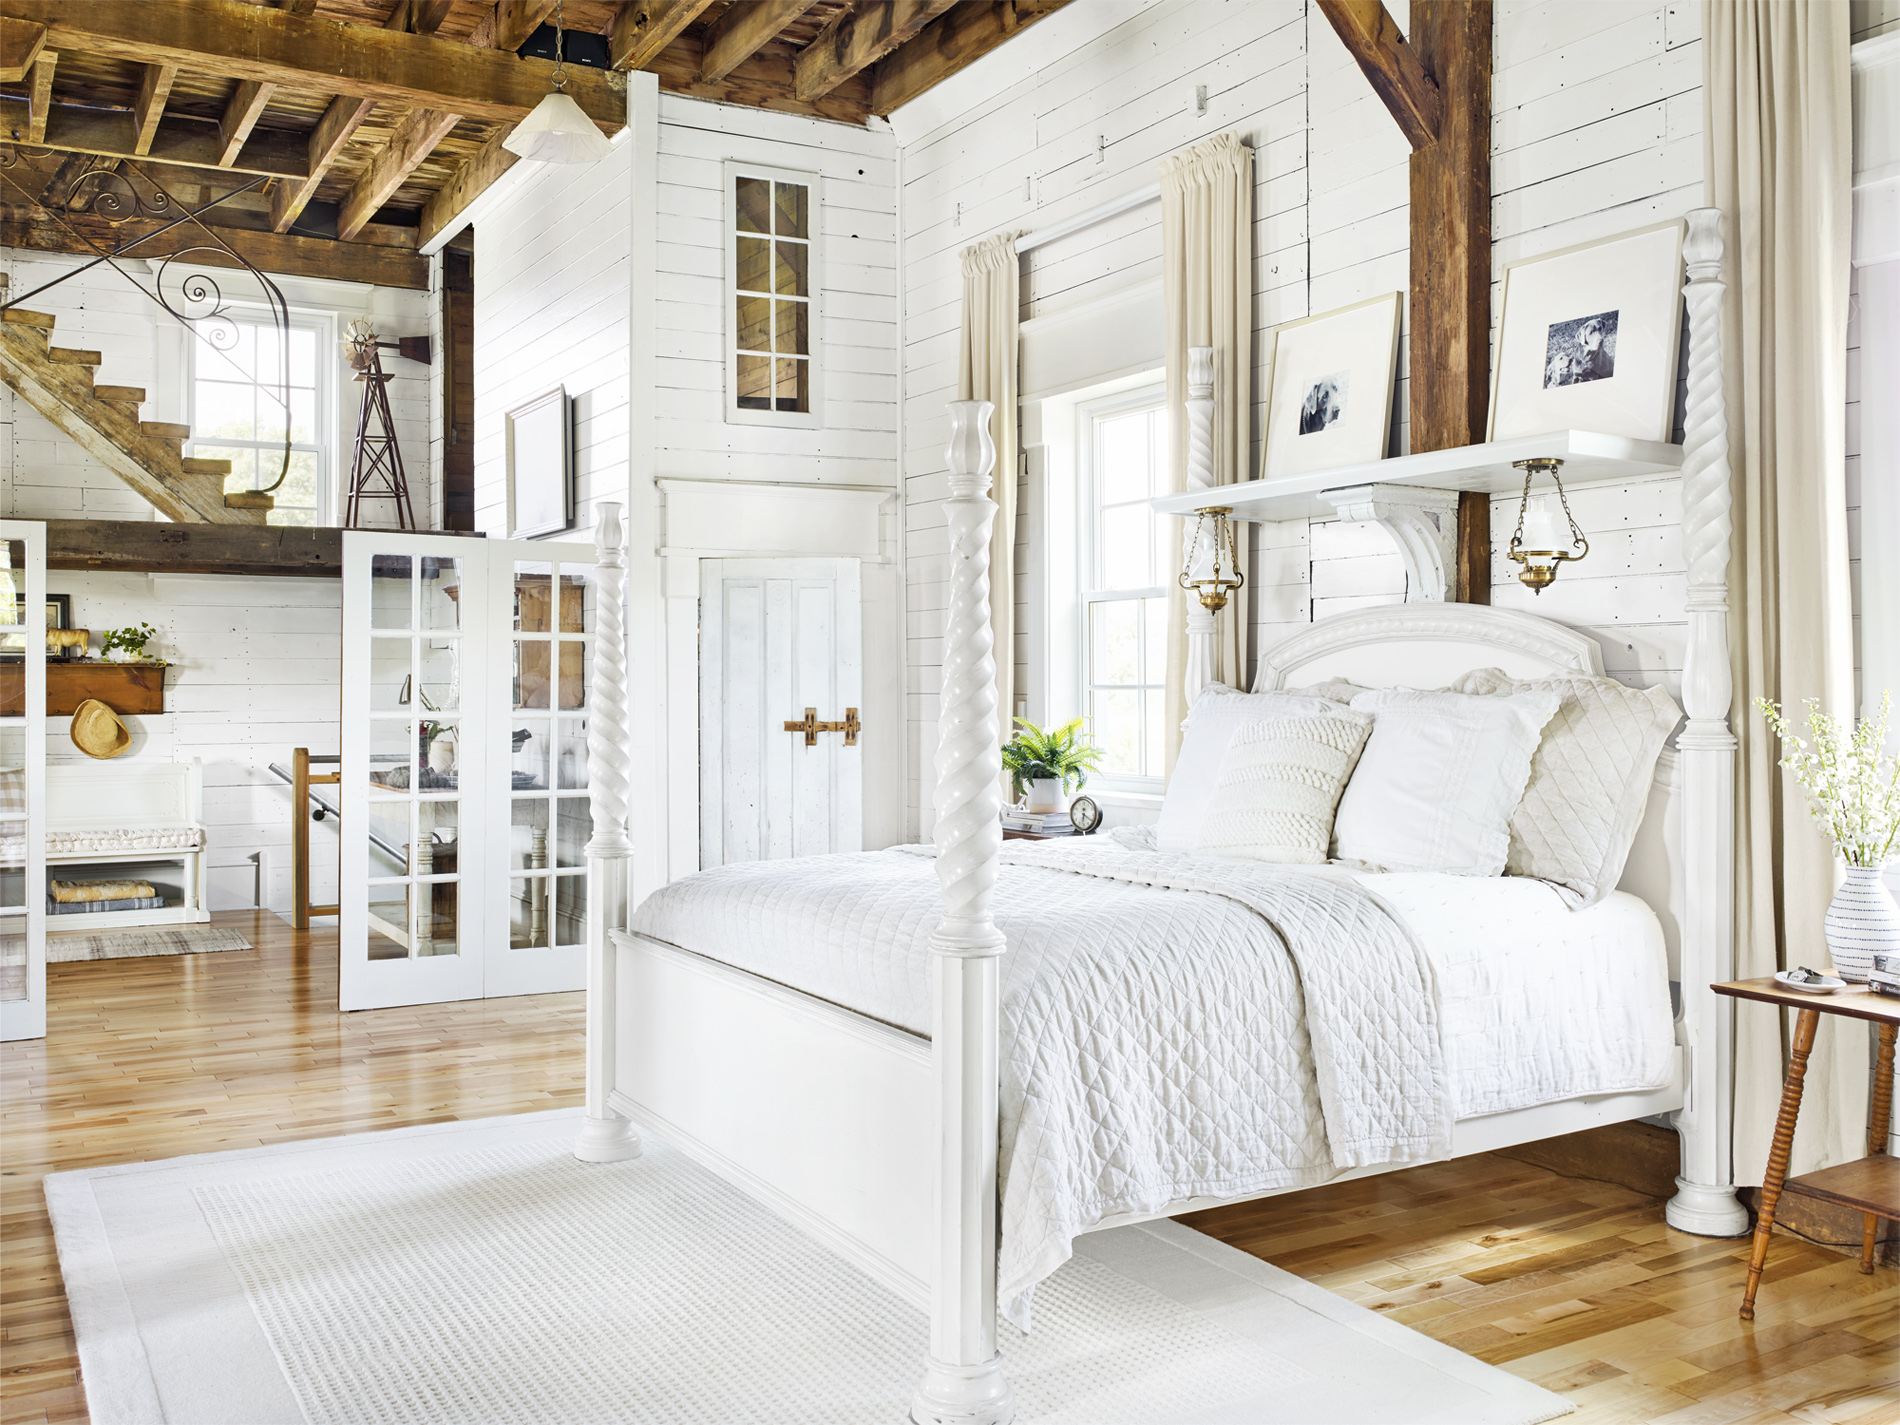 25 Cozy Bedroom Ideas - How To Make Your Room Feel Cozy